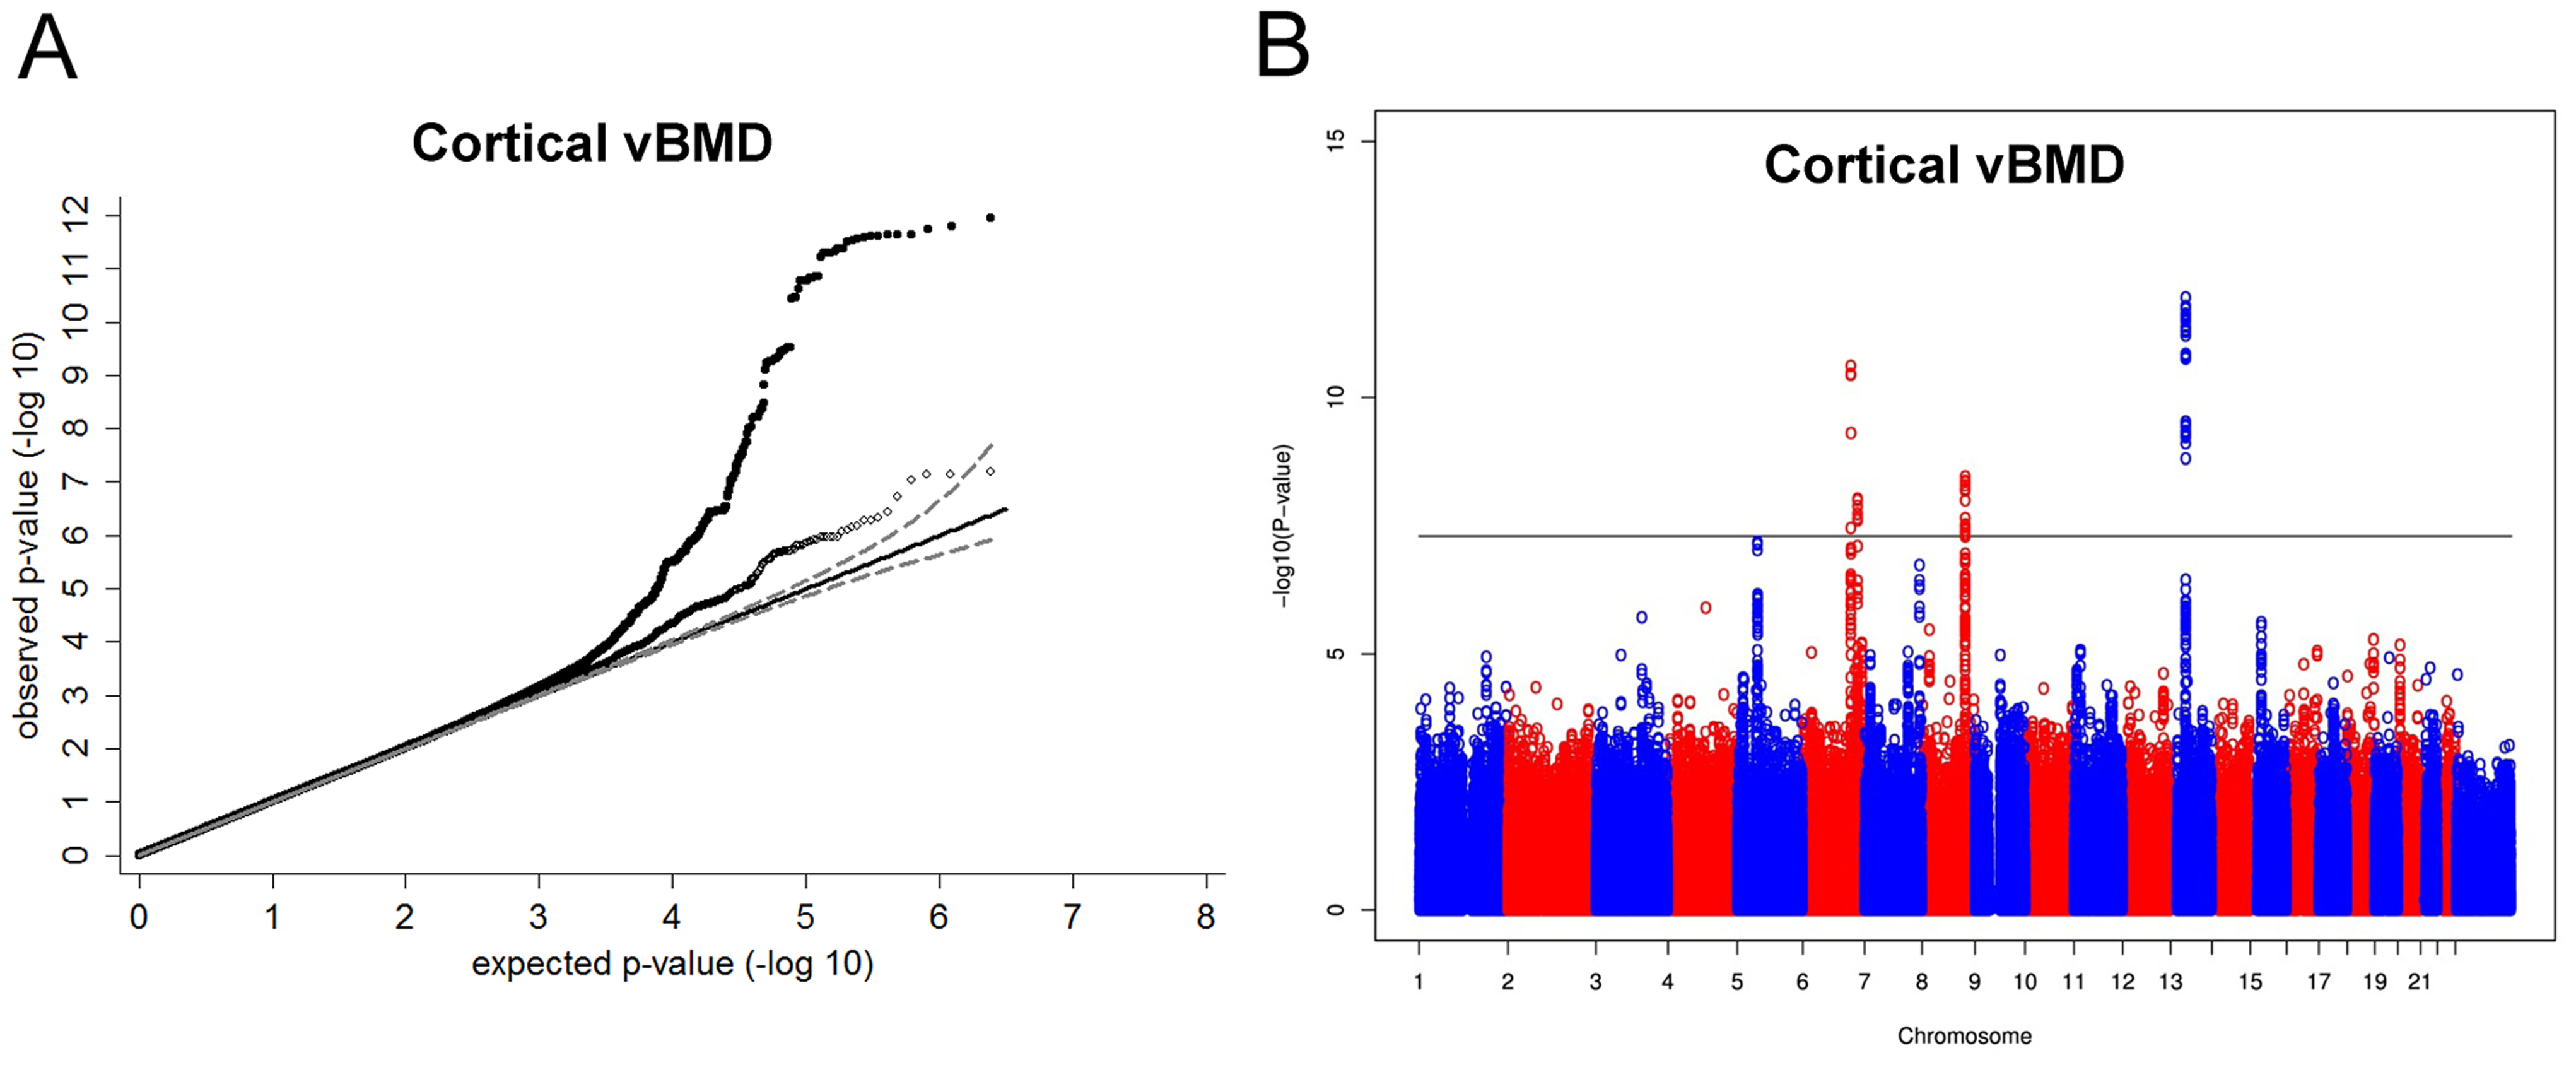 Genome-wide meta-analysis of cortical vBMD.